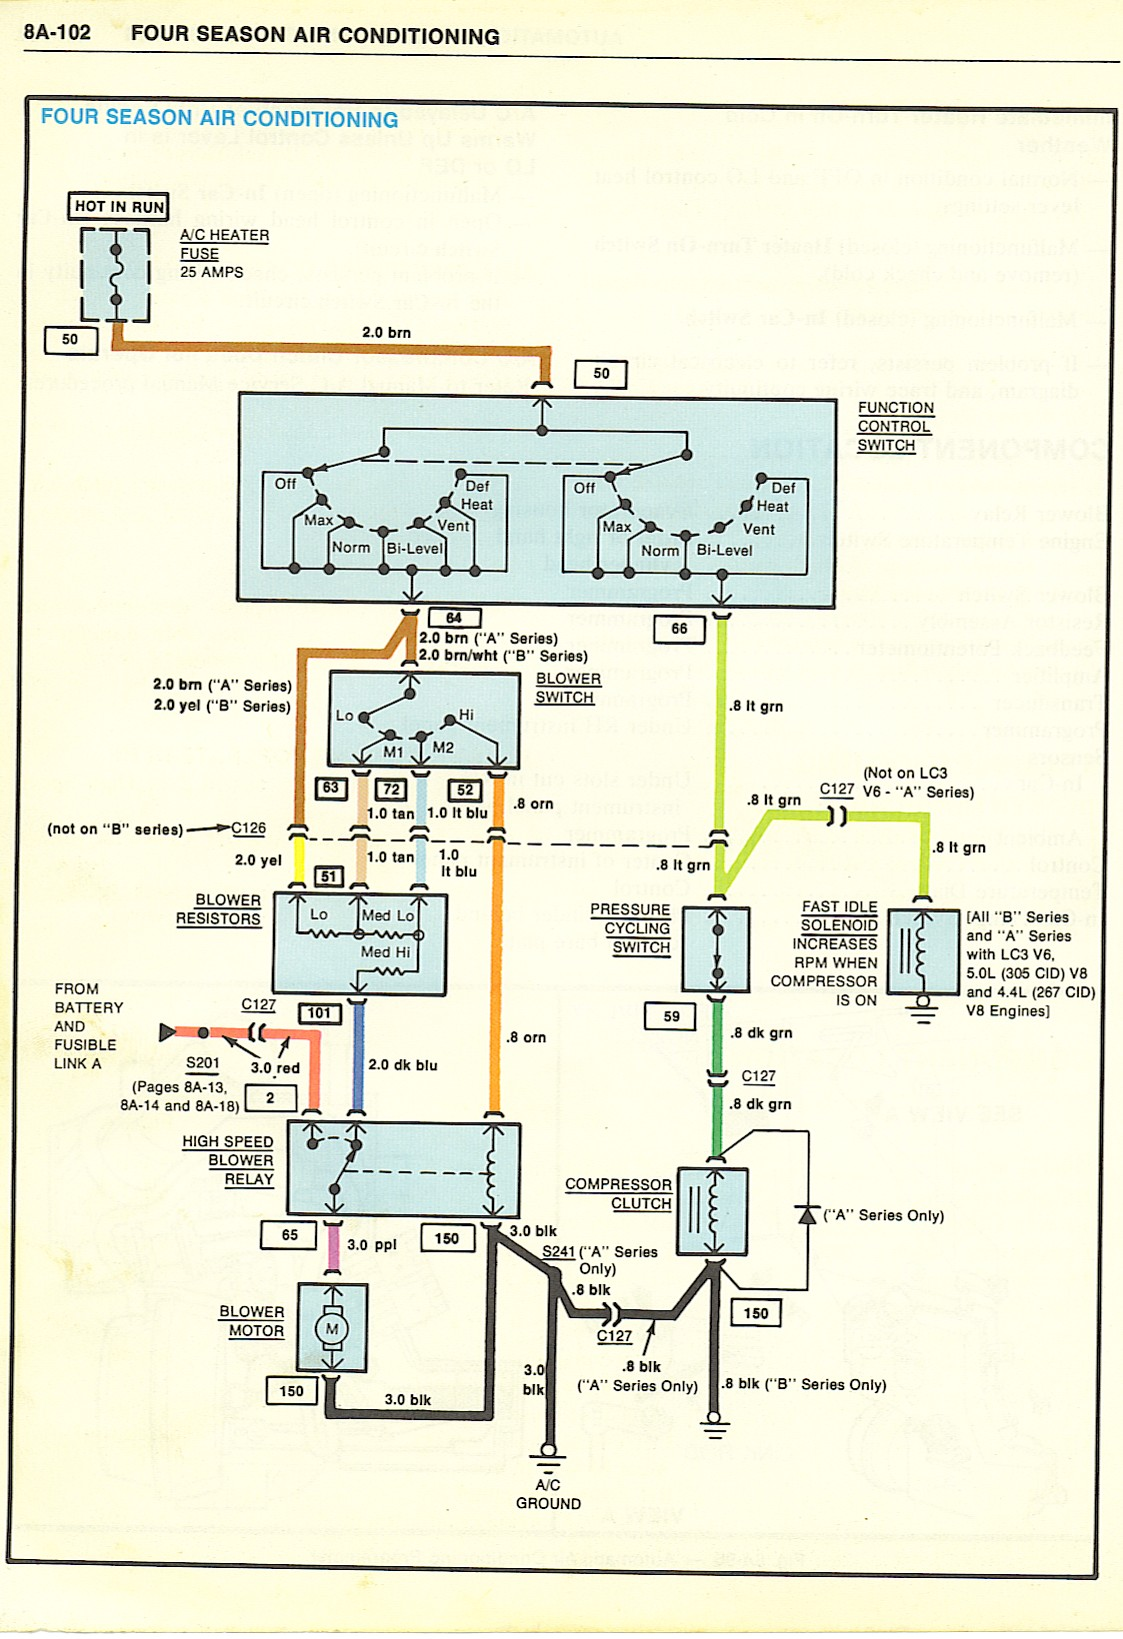 1971 el camino engine wiring diagram i need the    wiring    schematics for ac compressor  i need the    wiring    schematics for ac compressor